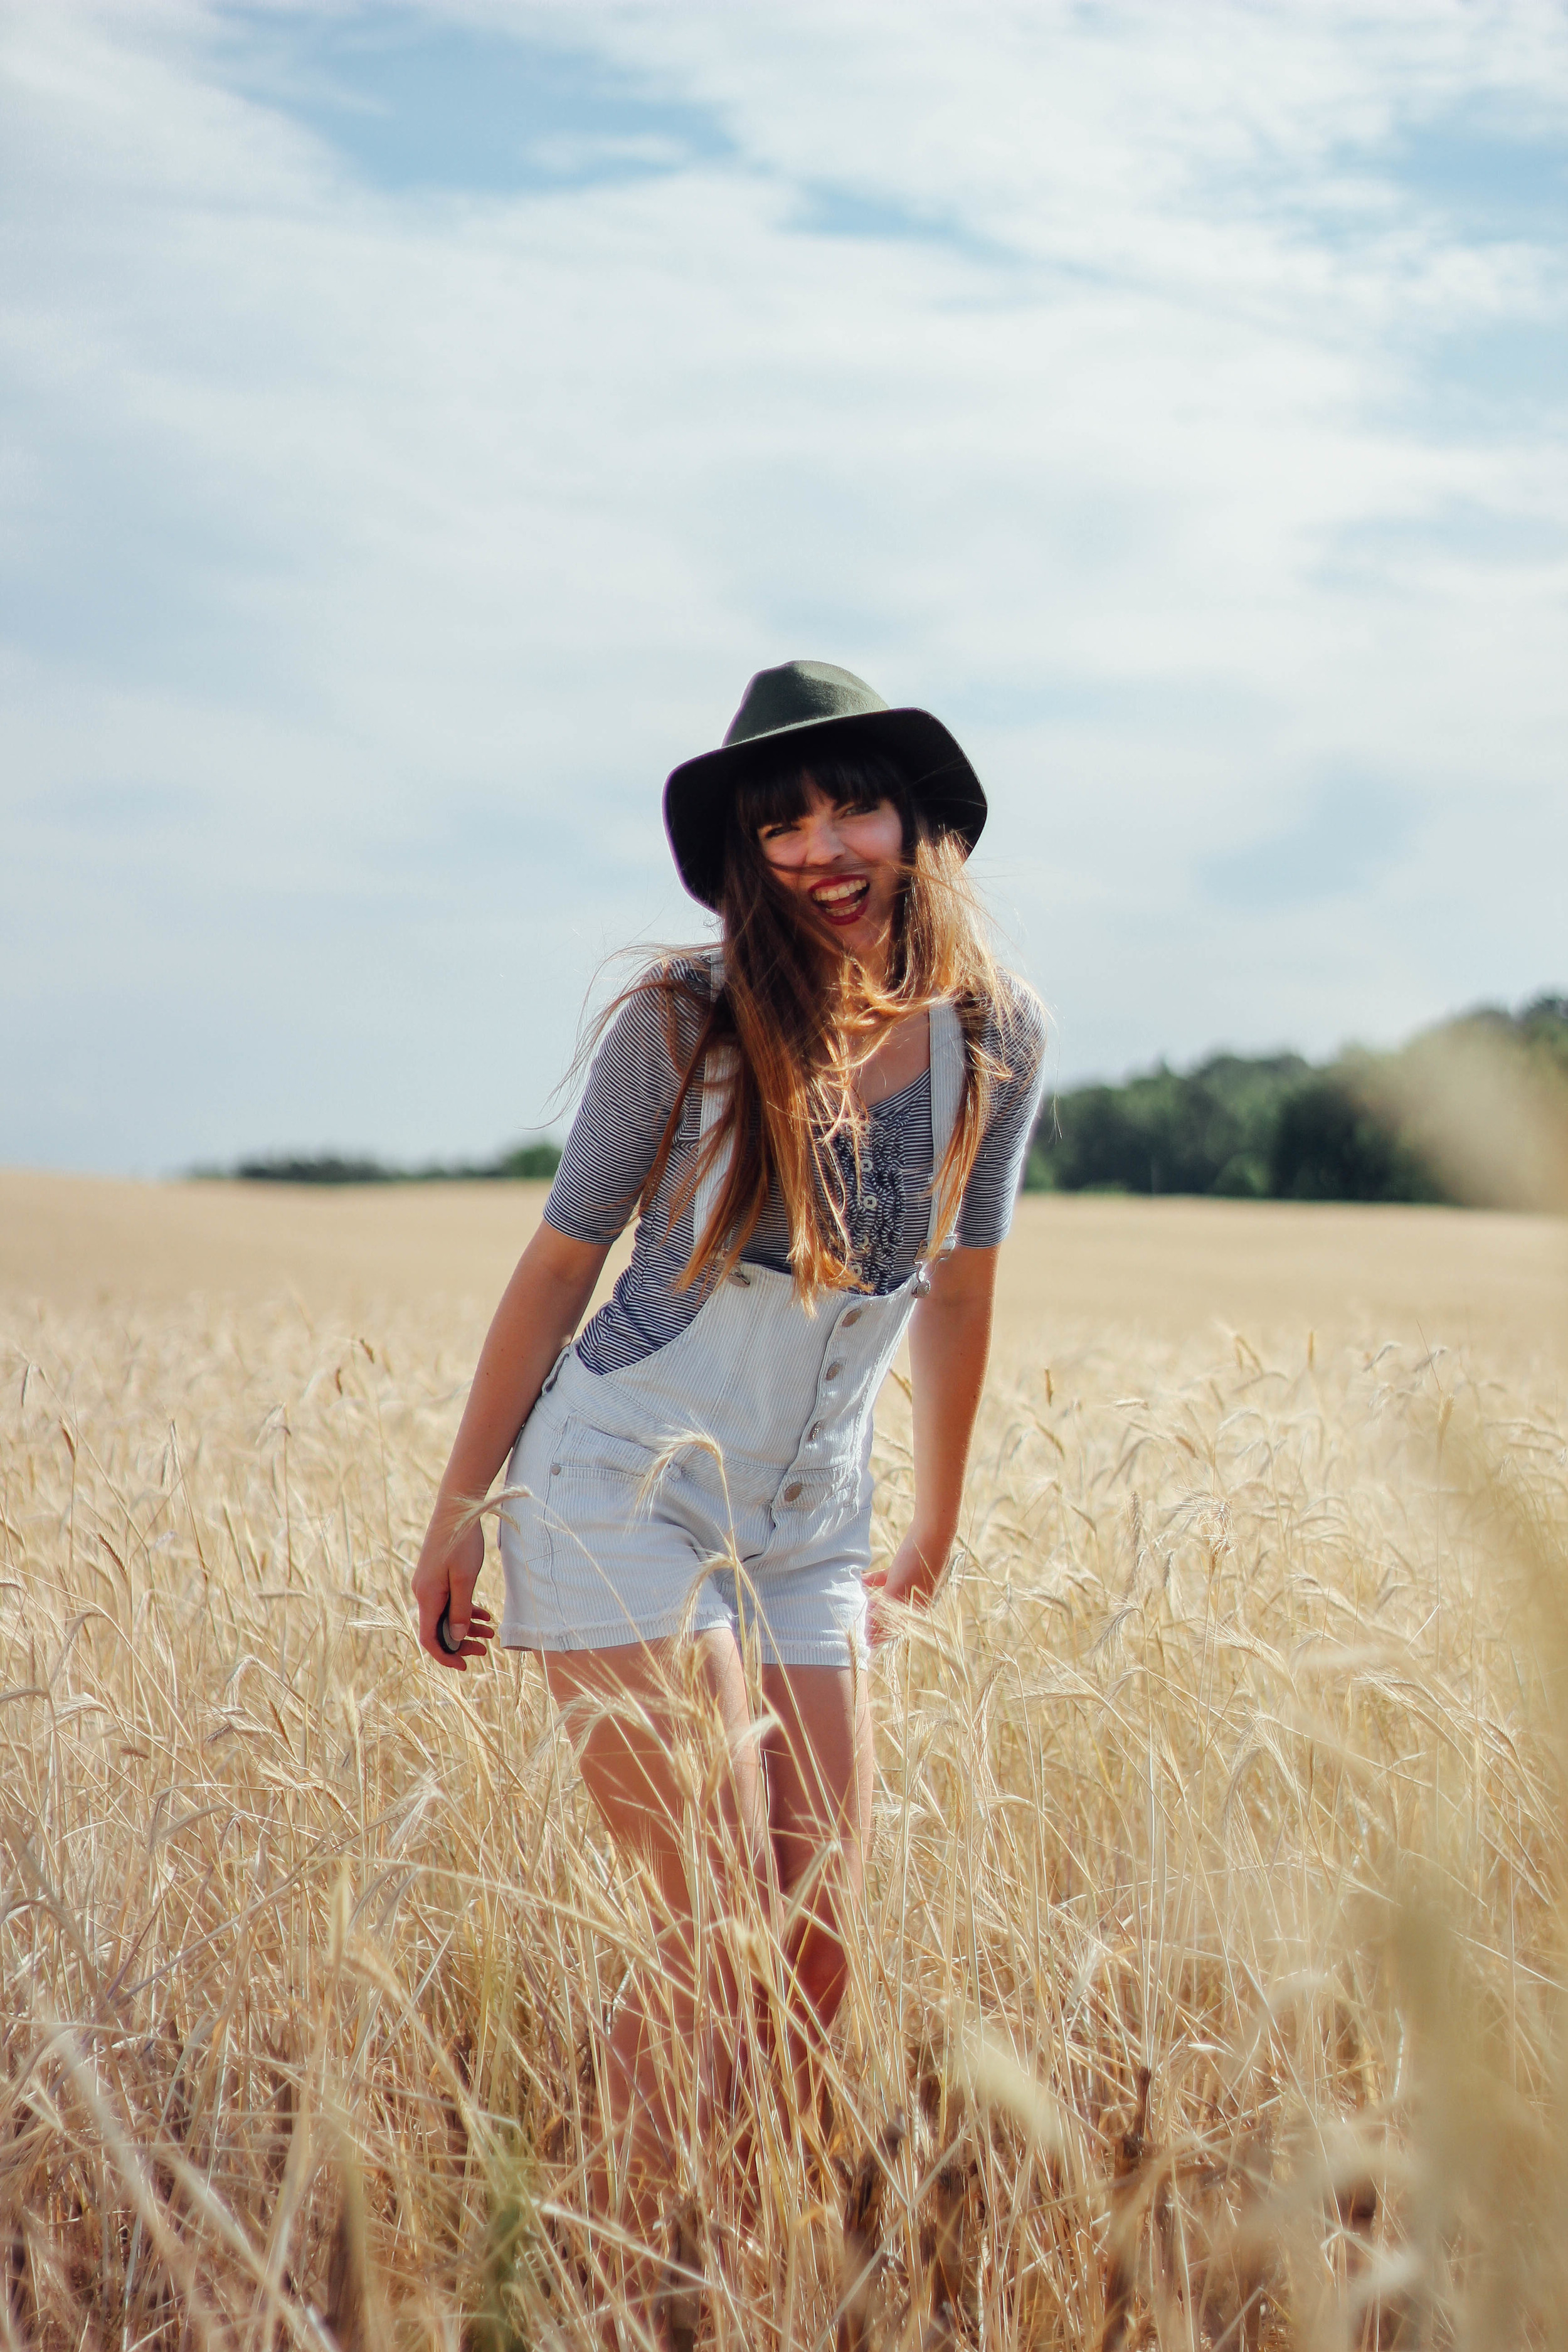 Shirt: Old Navy * Overalls: thrifted * Hat: Forever21